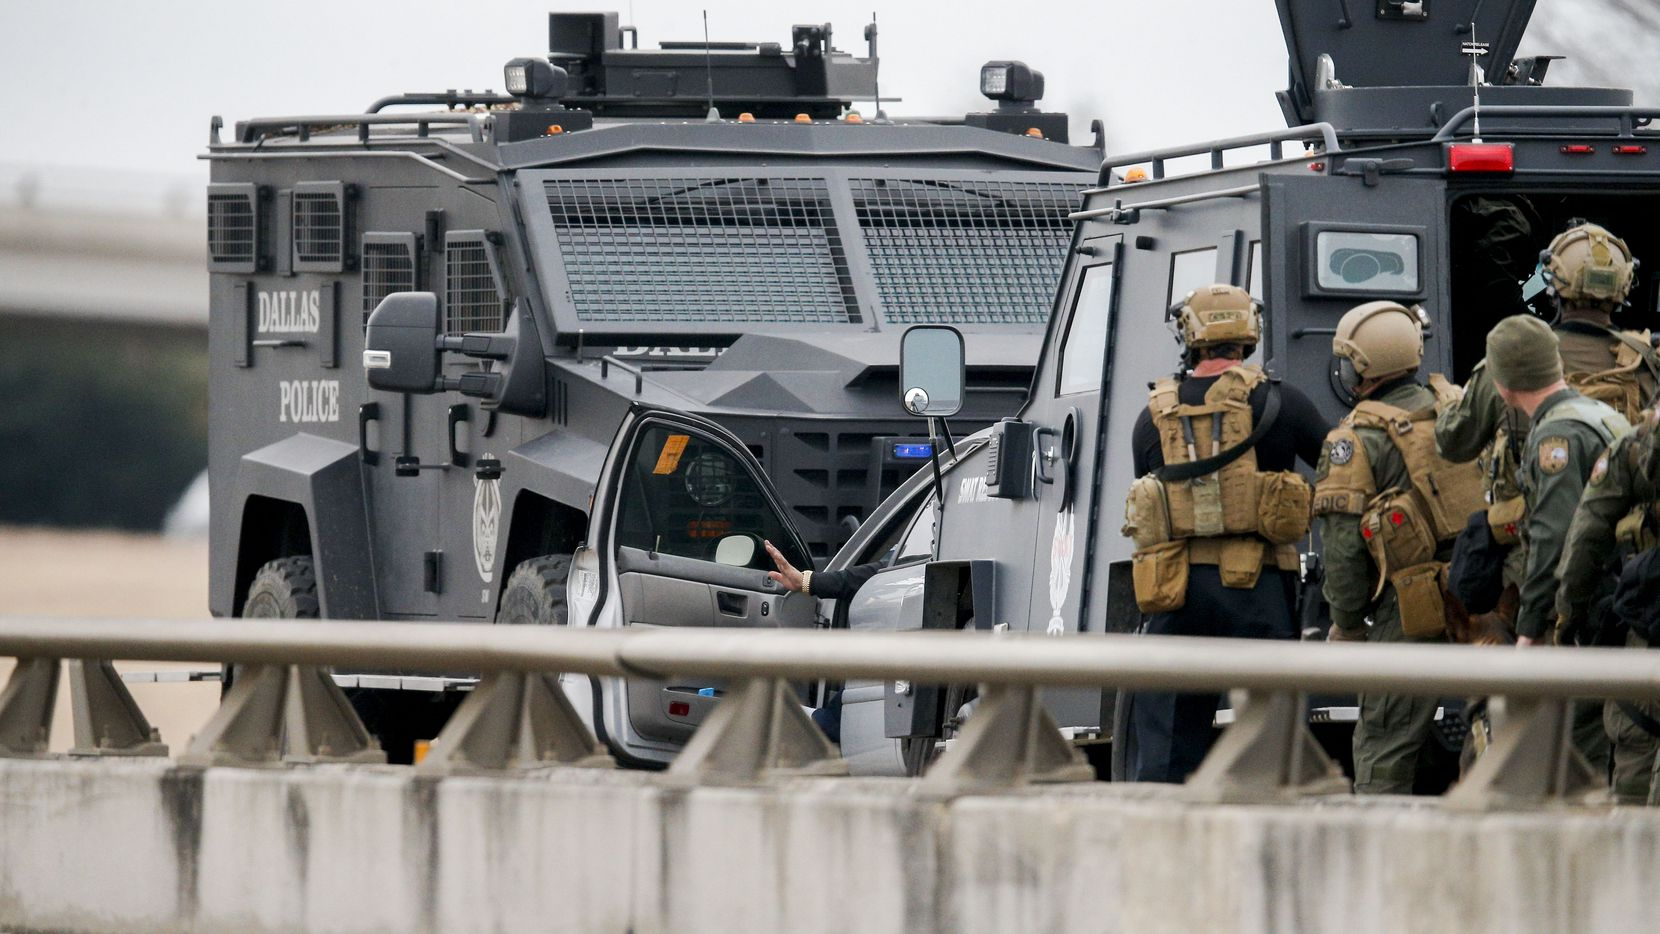 SWAT officers prepare to take a suspect into custody during a standoff on I-20 at I-35E, Friday, January 8, 2021. The suspect was taken into custody peacefully. (Brandon Wade/Special Contributor)